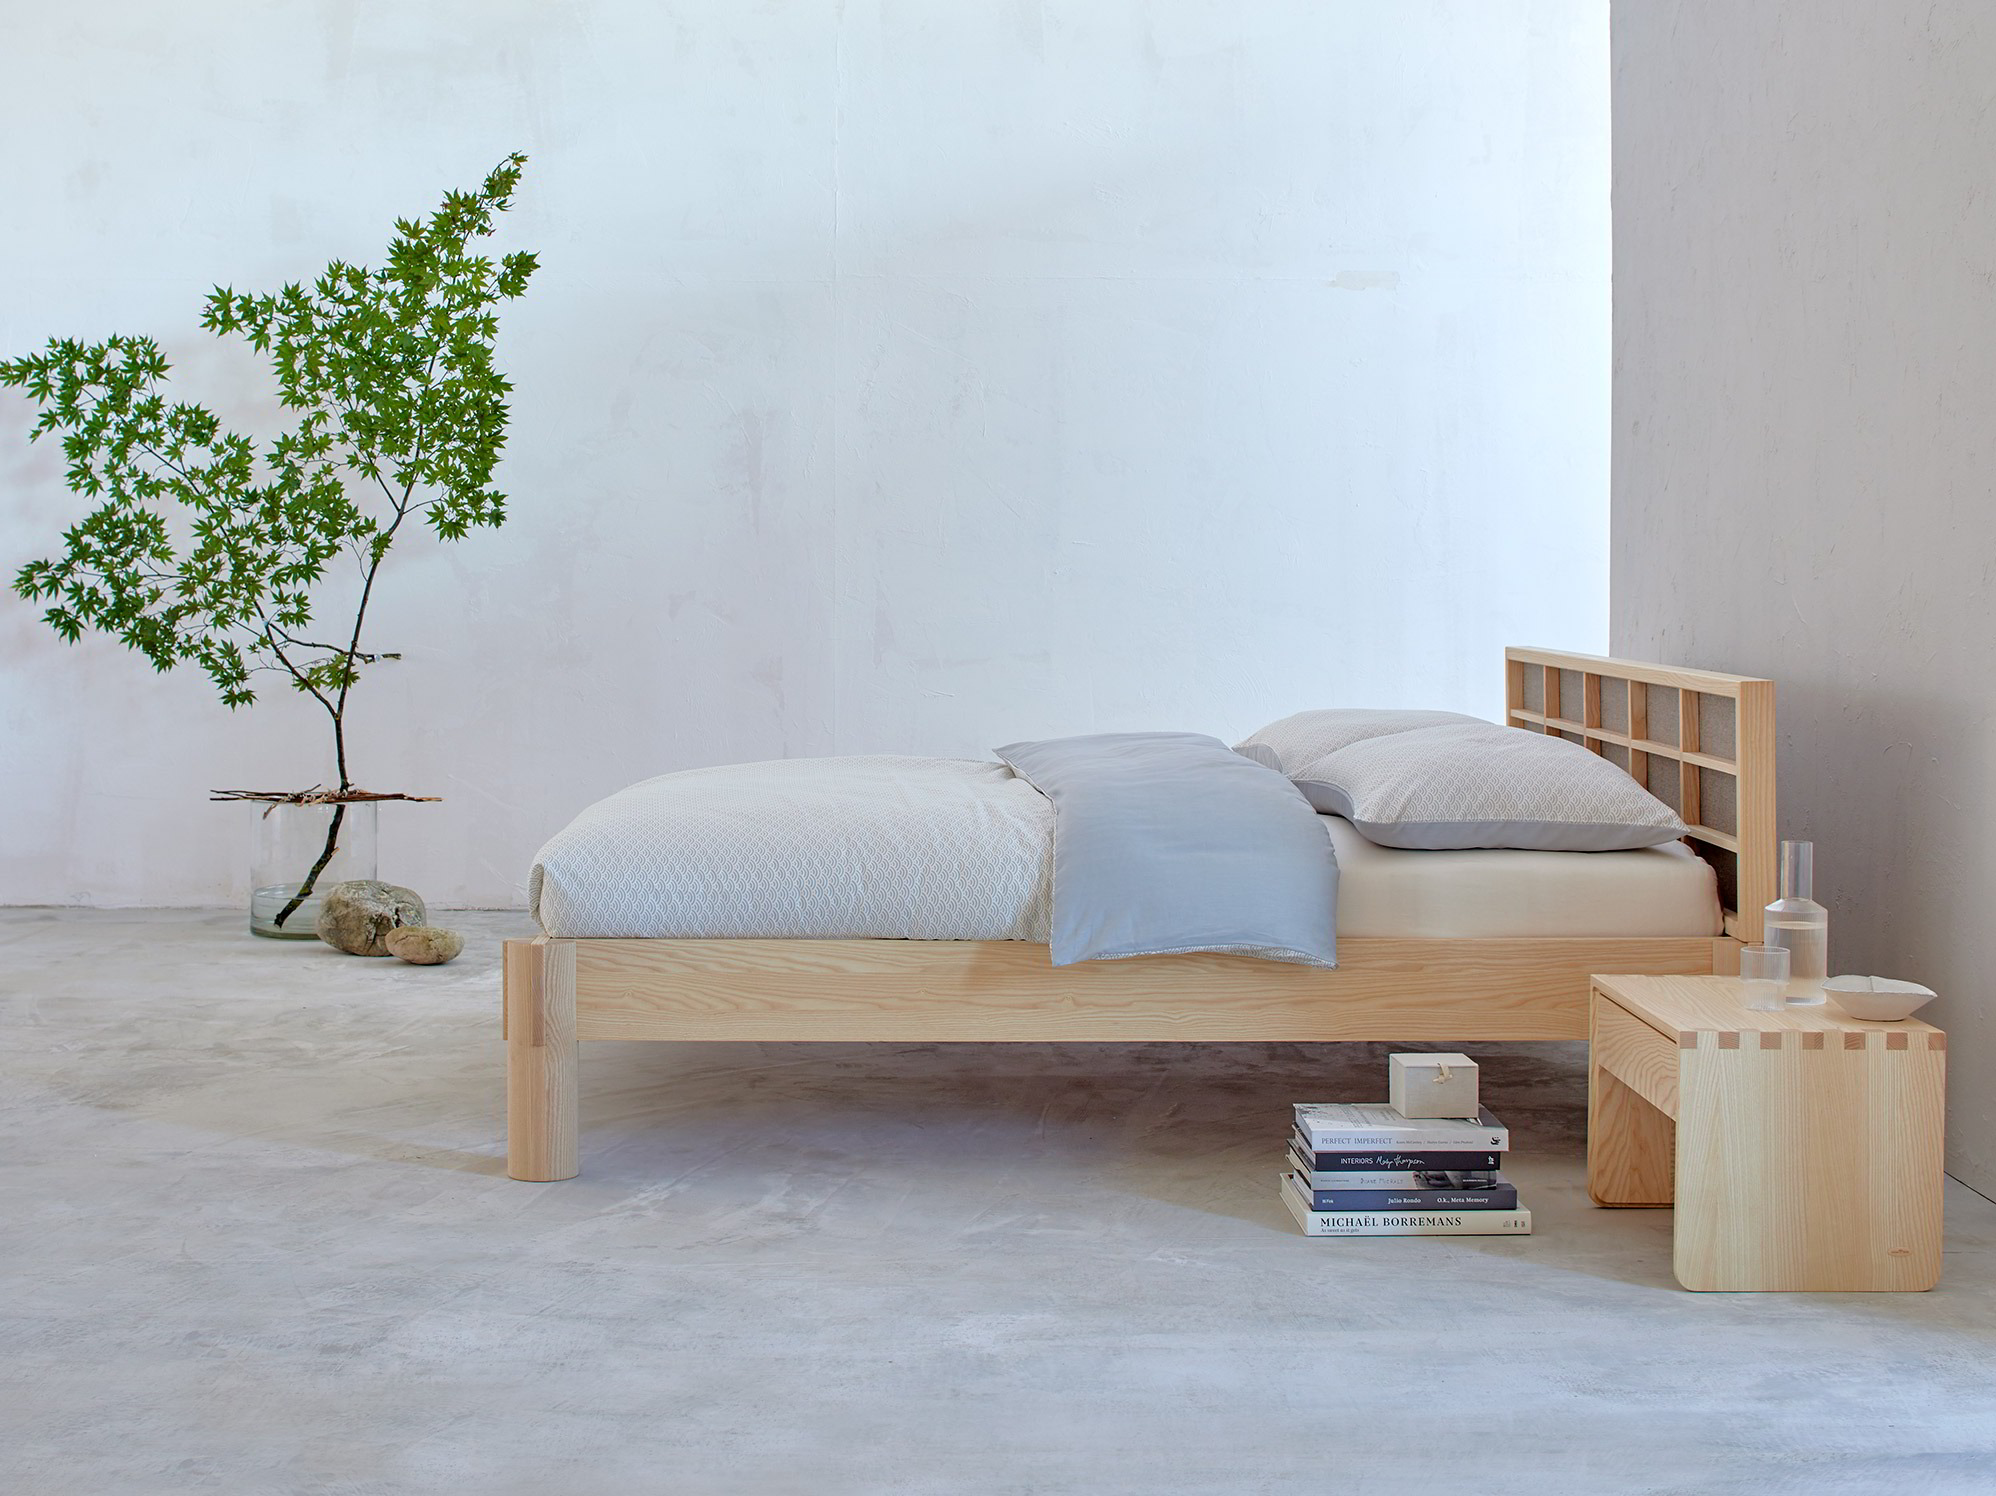 ryokan bett mit betthaupt stoffbespannung esche gr ne erde. Black Bedroom Furniture Sets. Home Design Ideas